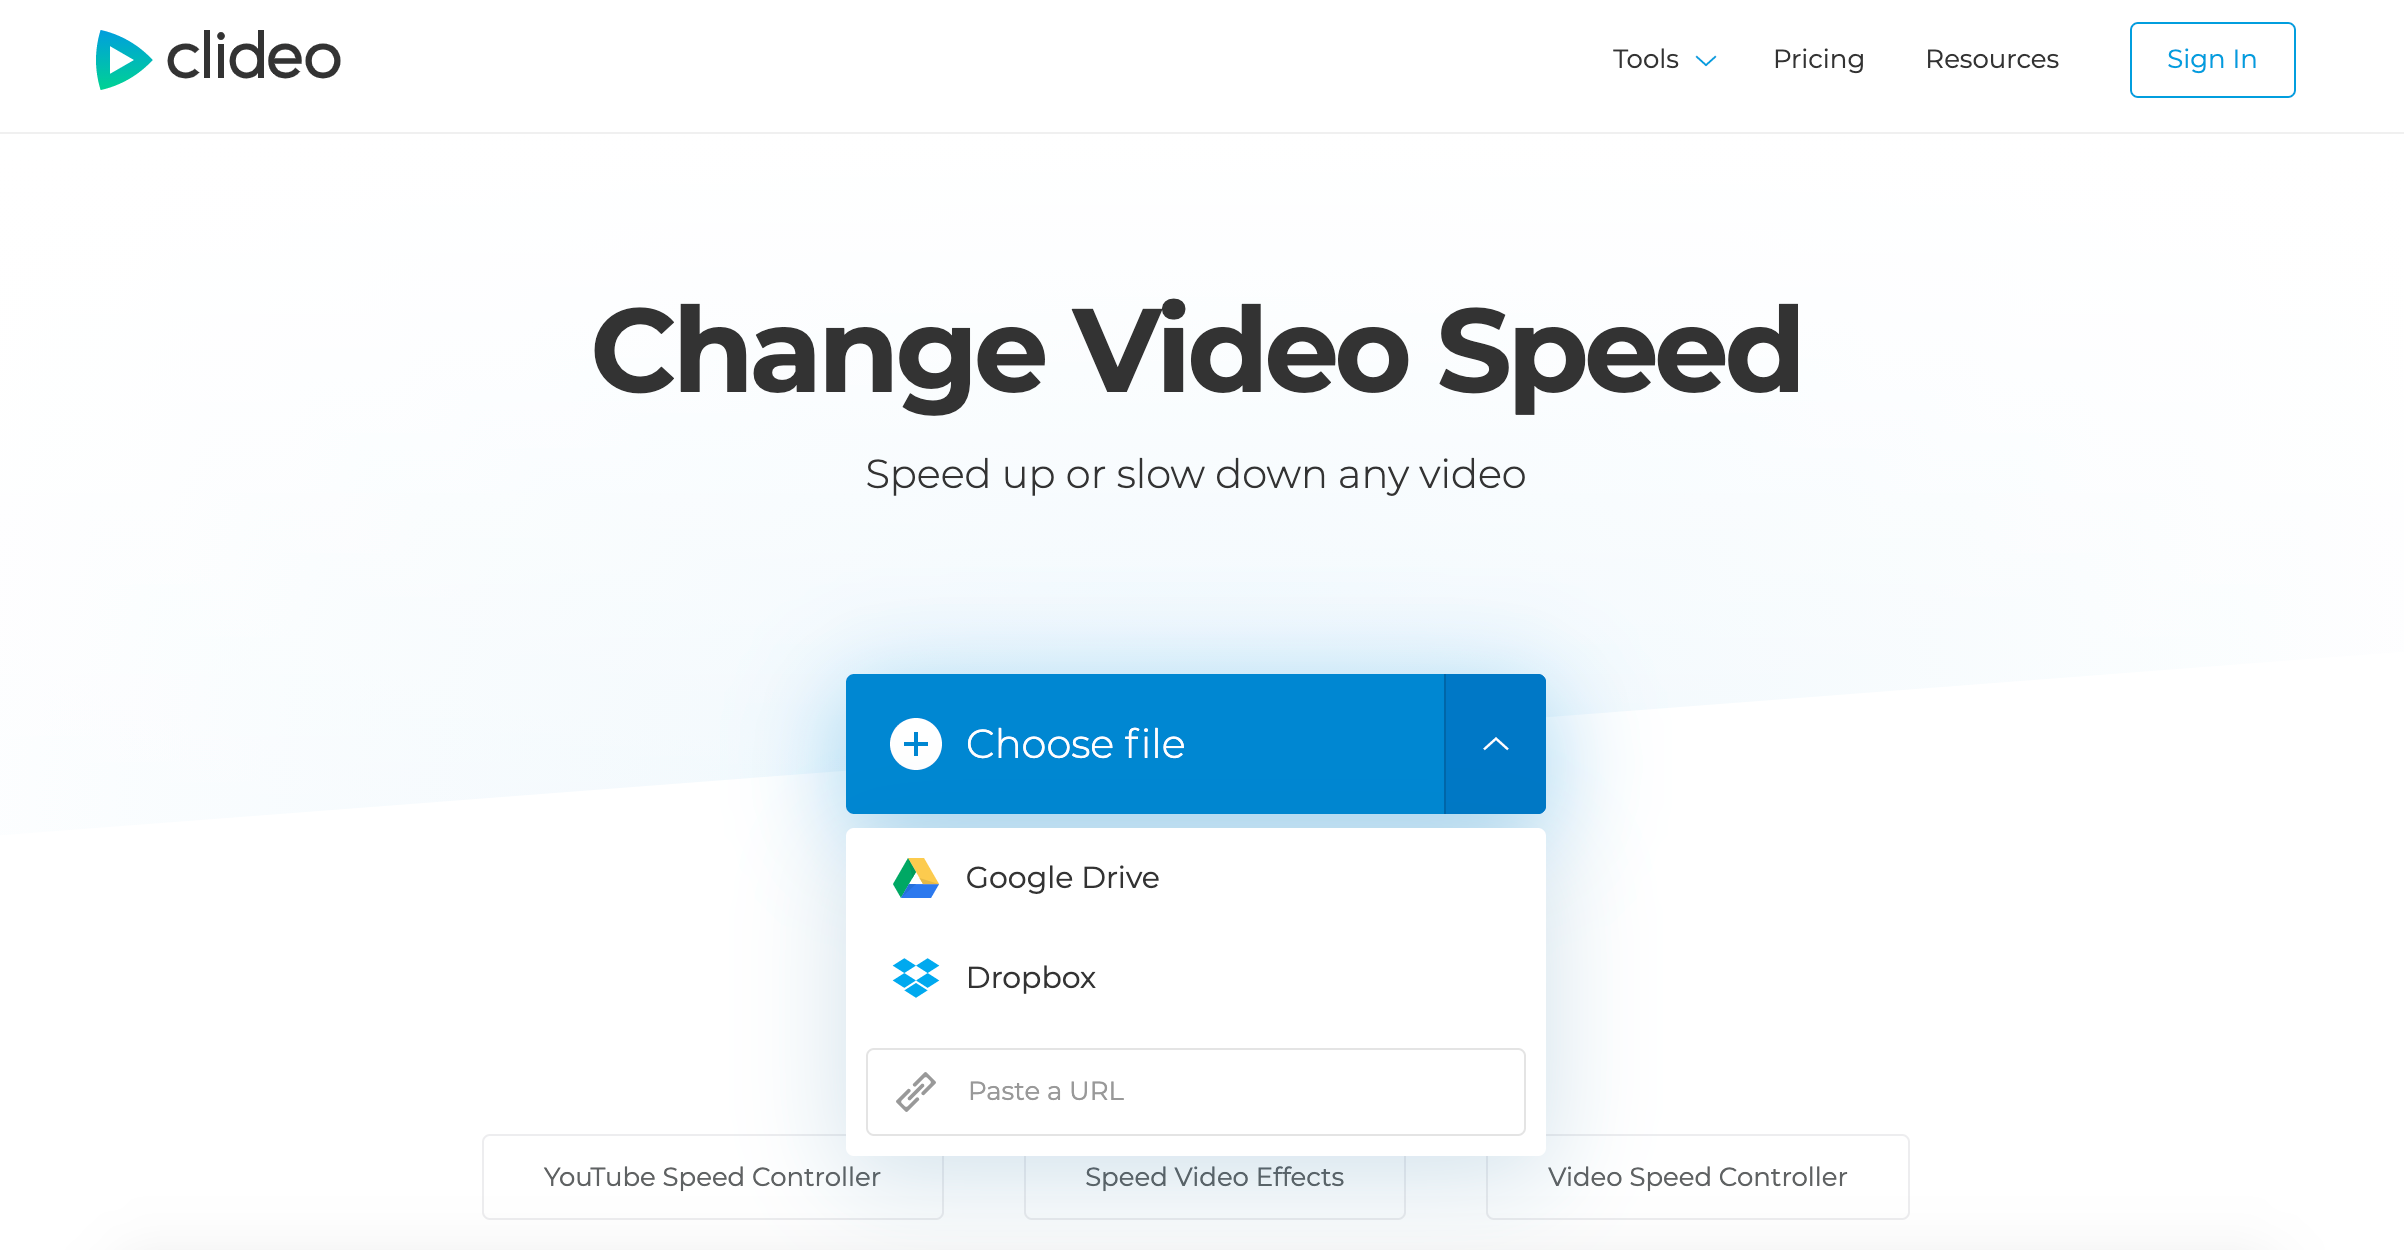 Open a video you want to speed up in the Clideo tool